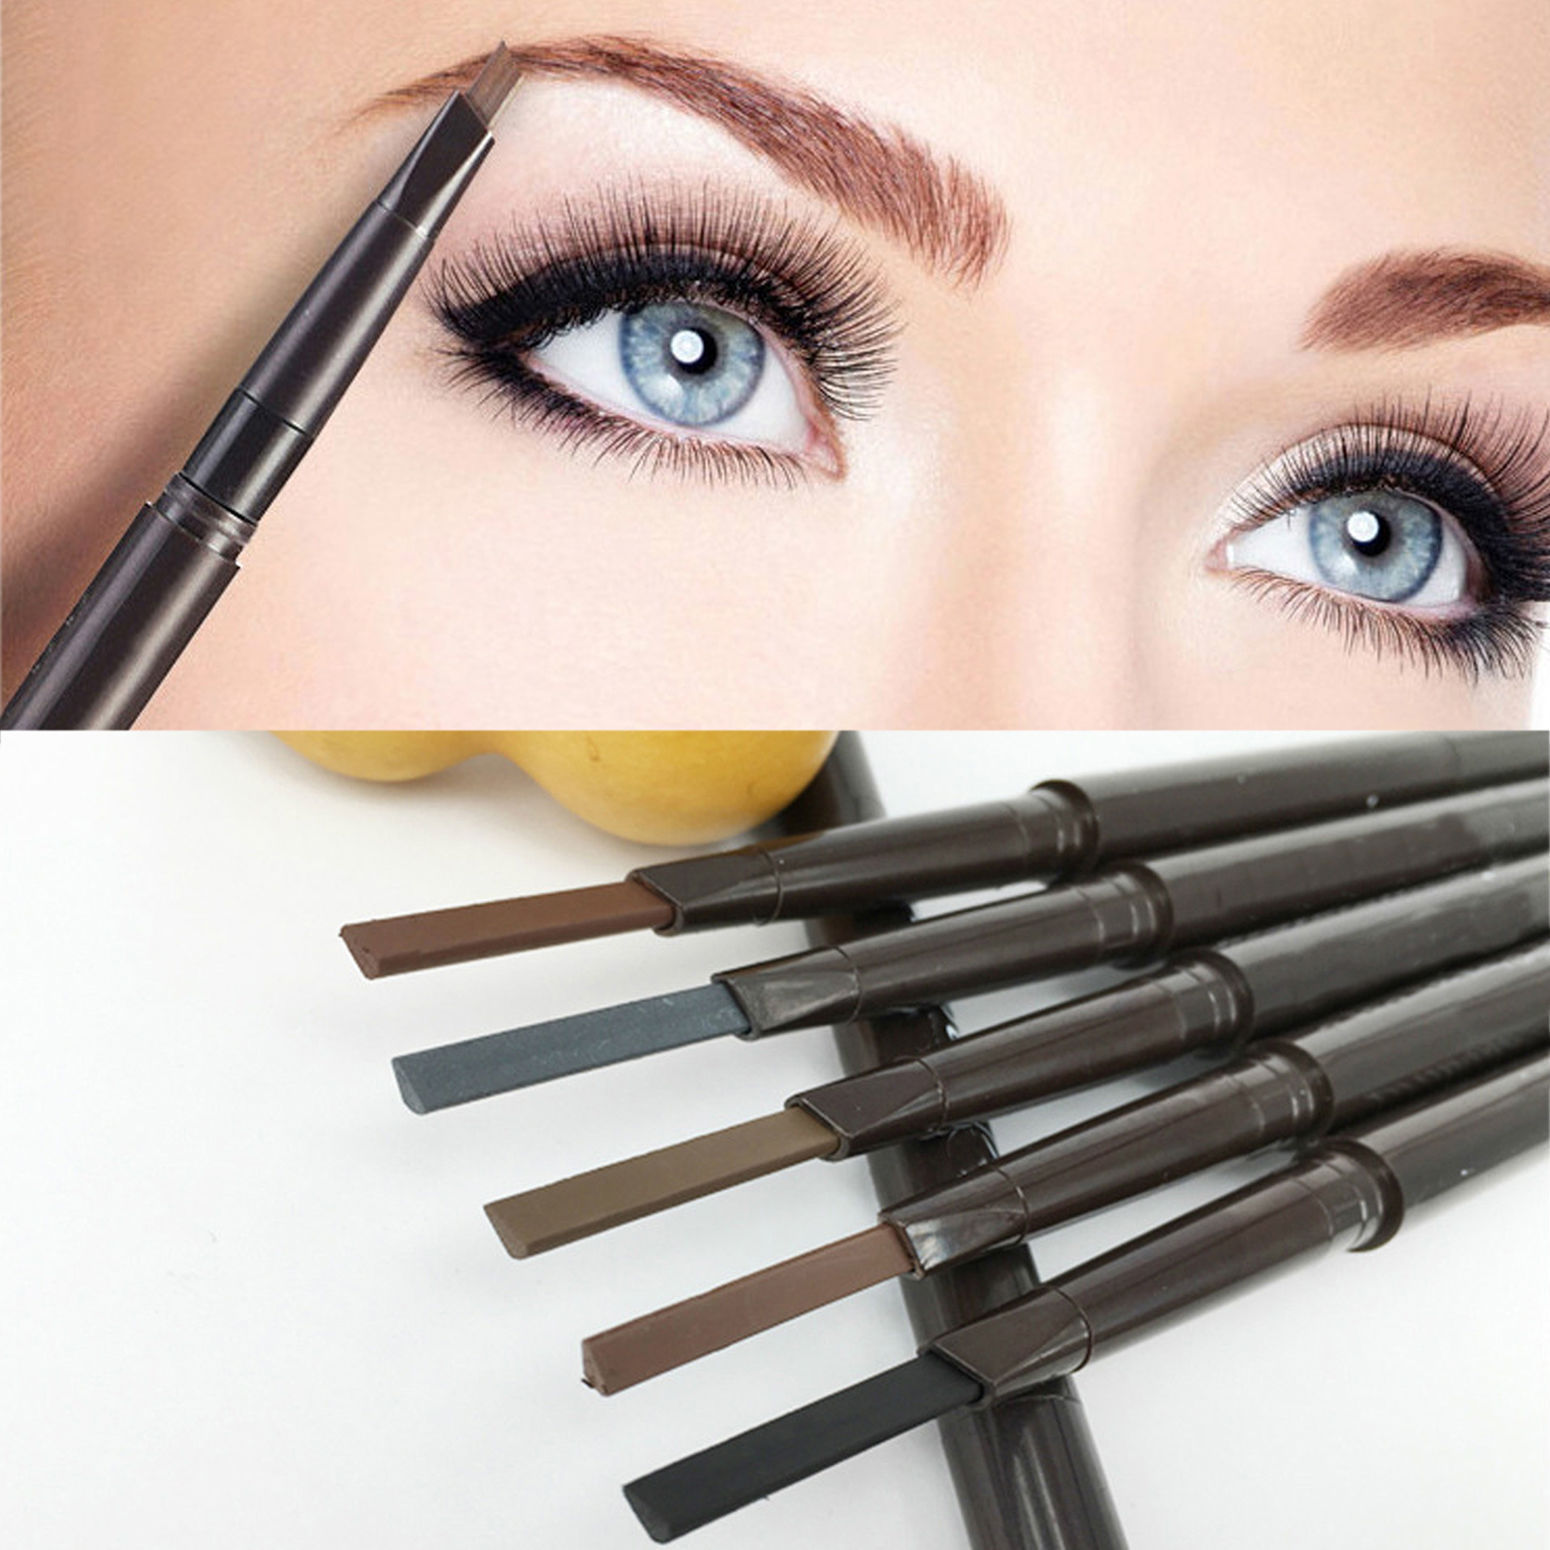 0bf357fc458 Detail Feedback Questions about Hot Sale Eyebrow Enhancers Waterproof Eye  Brow Automatic Eyebrow Pencil Makeup Eyebrows Brushes Cosmetics Tools Brow  Pencil ...